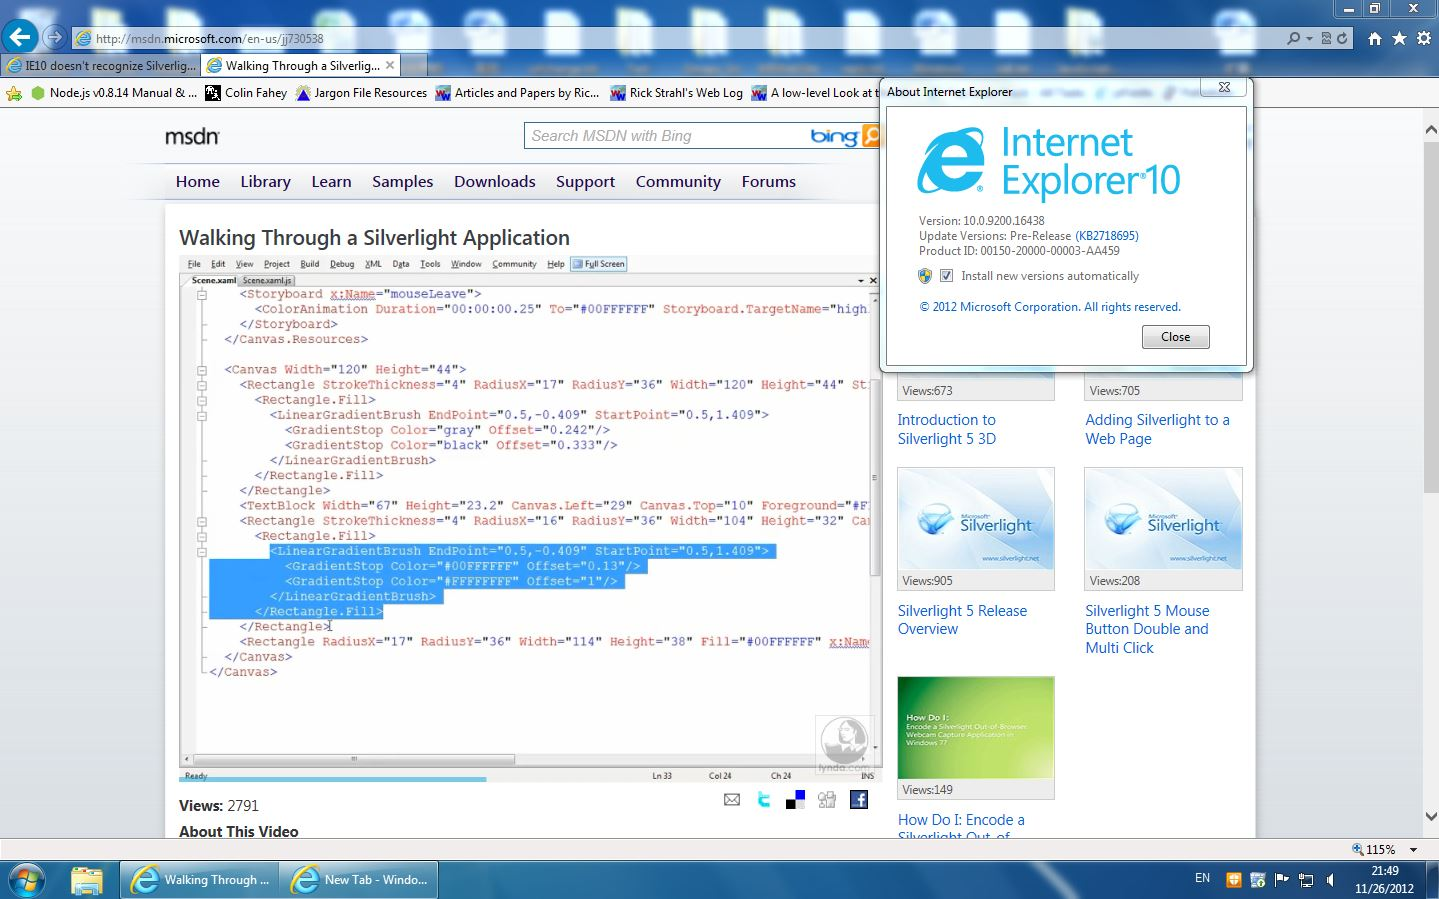 IE10 doesn't recognize Silverlight using Windows 7